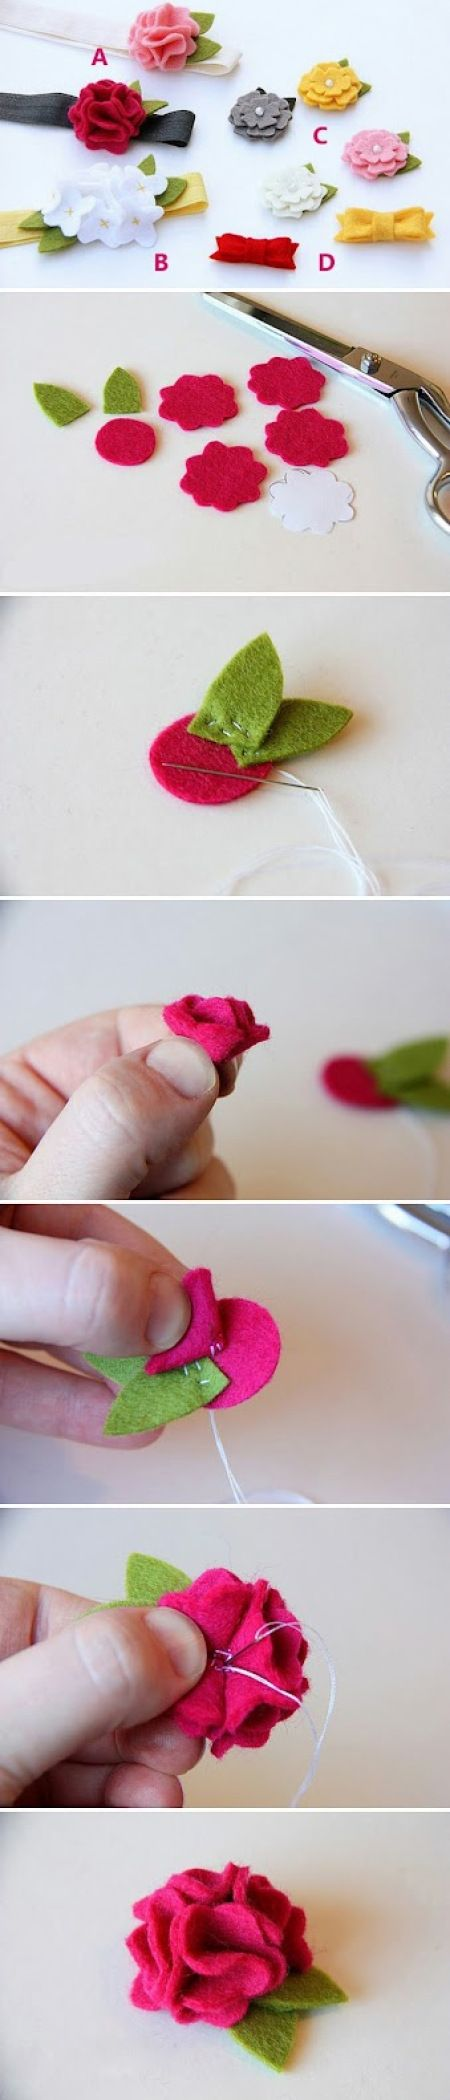 Felt+Flowers+Tutorial Flower Tutorials Directory | Blog Birthday Celebrations